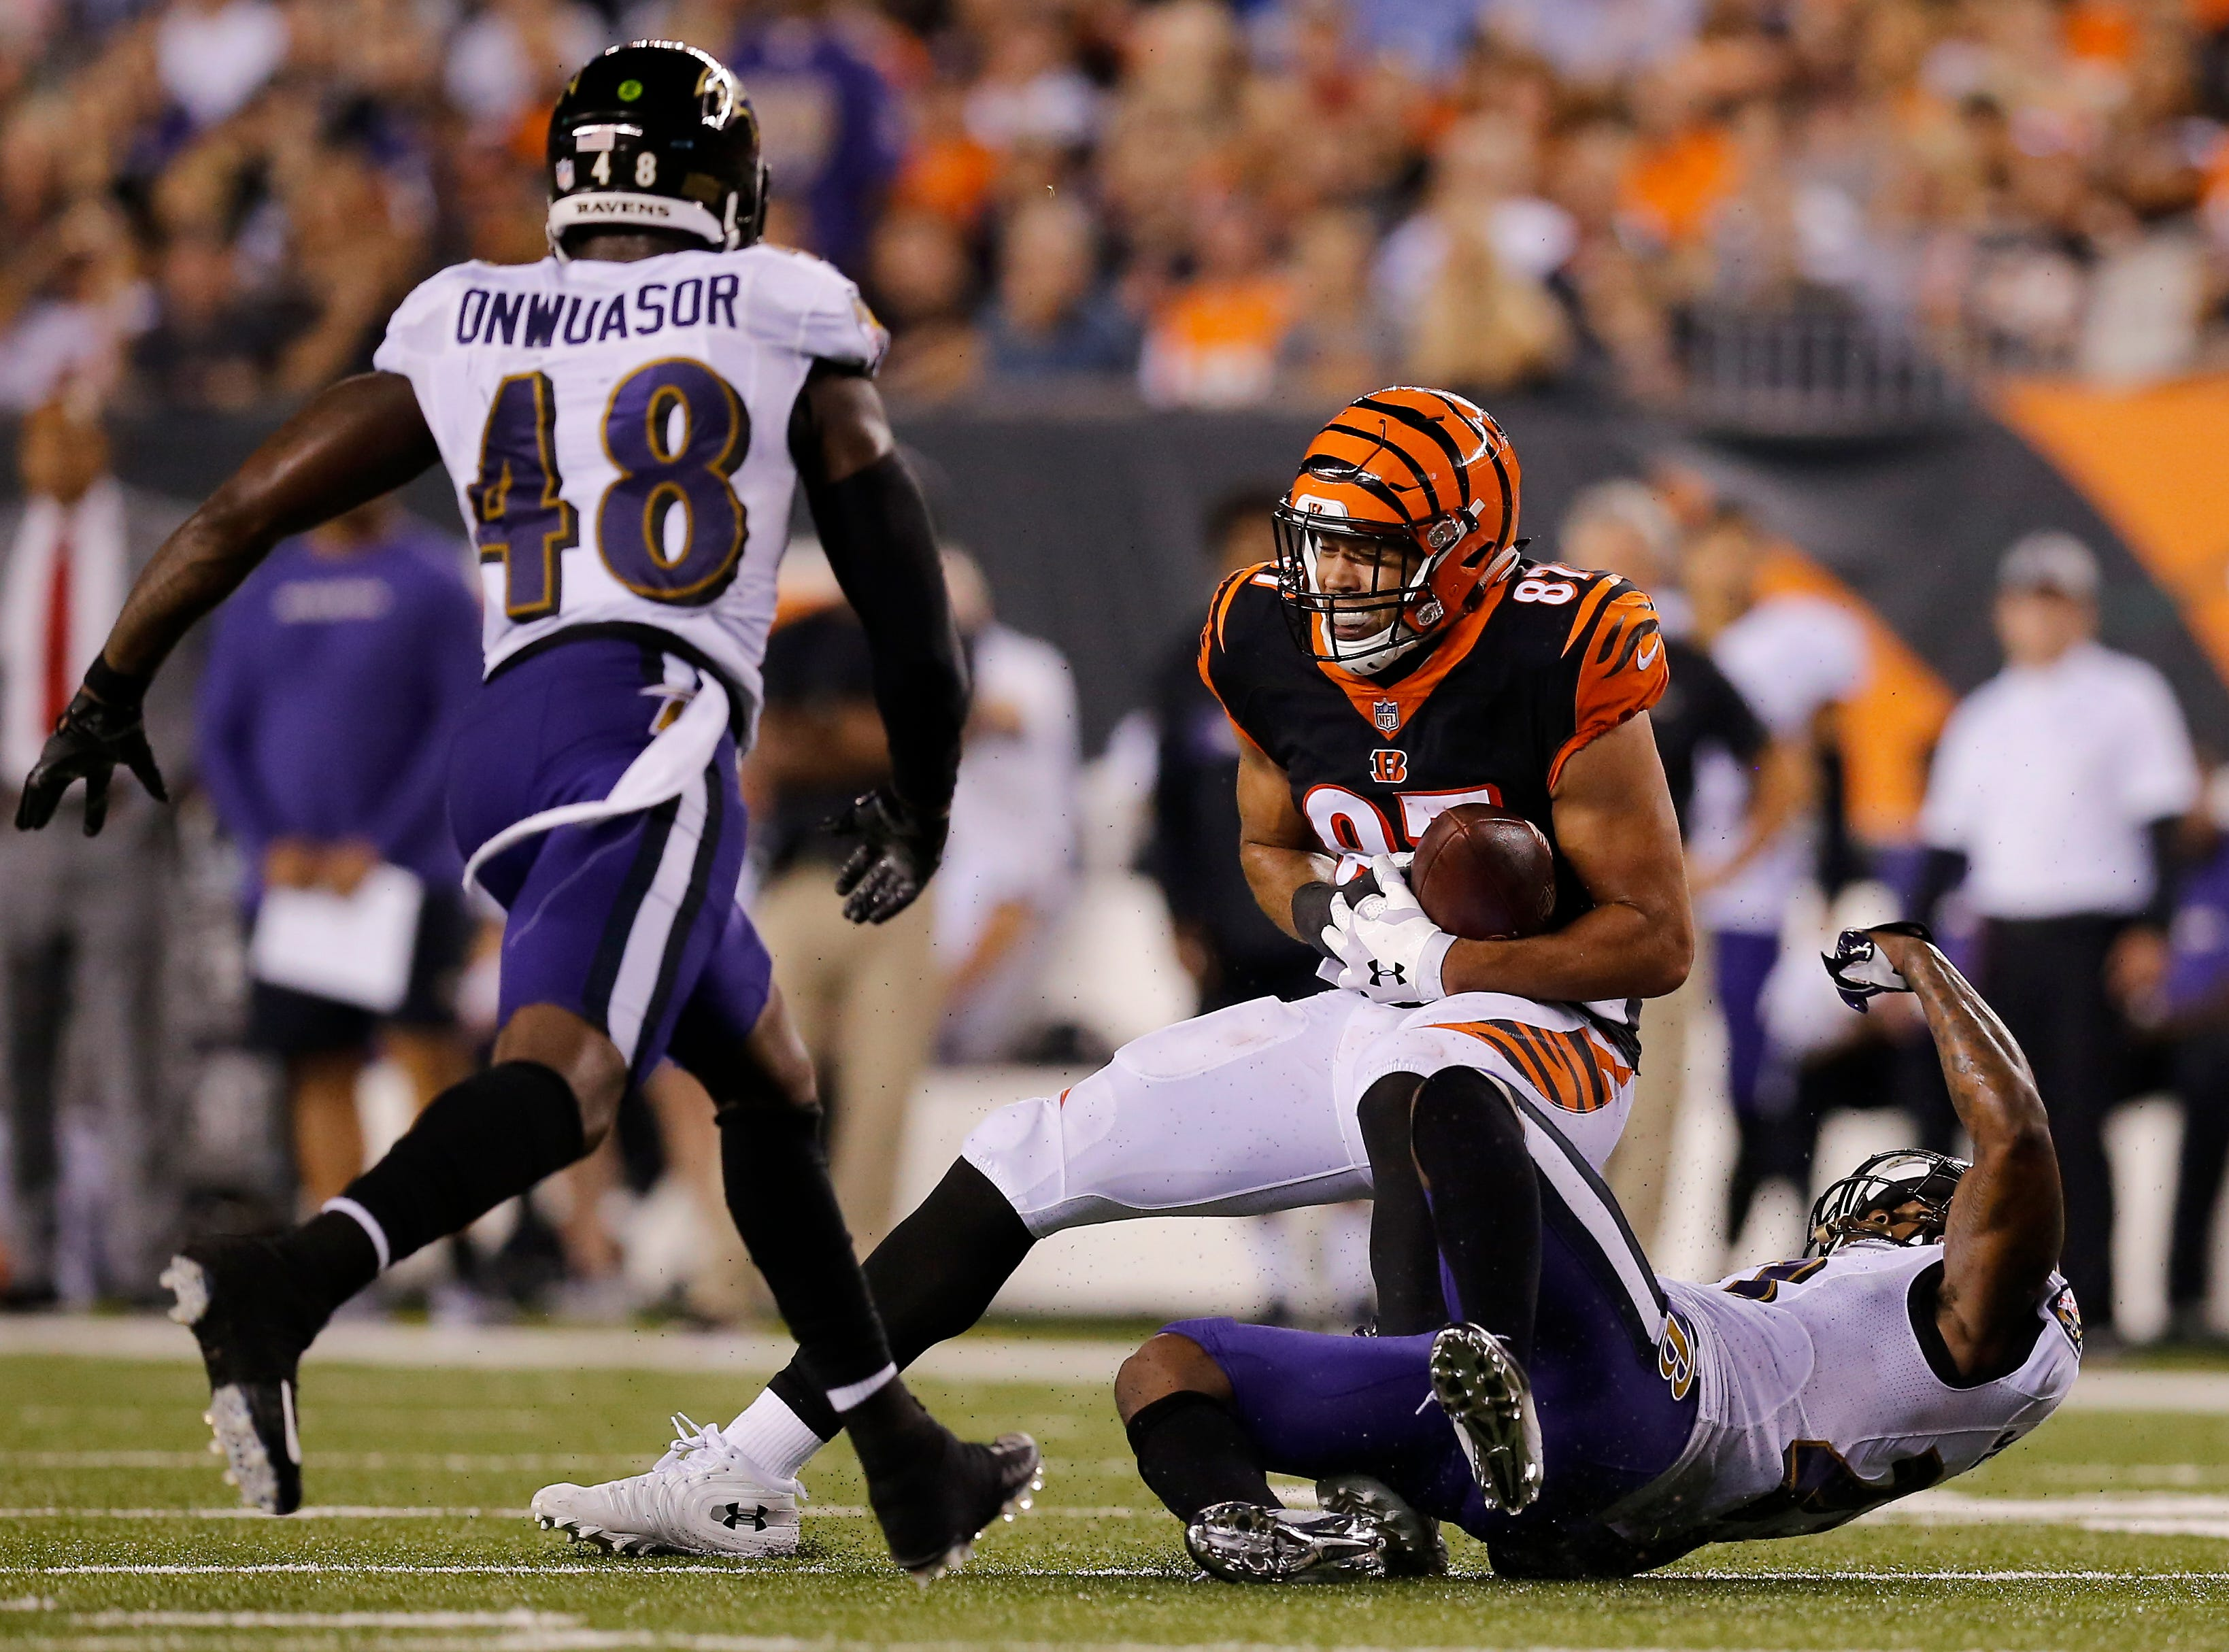 Cincinnati Bengals tight end C.J. Uzomah (87) holds on to a catch in the second quarter of the NFL Week 2 game between the Cincinnati Bengals and the Baltimore Ravens at Paul Brown Stadium in downtown Cincinnati on Thursday, Sept. 13, 2018. The Bengals led 28-14 at halftime.